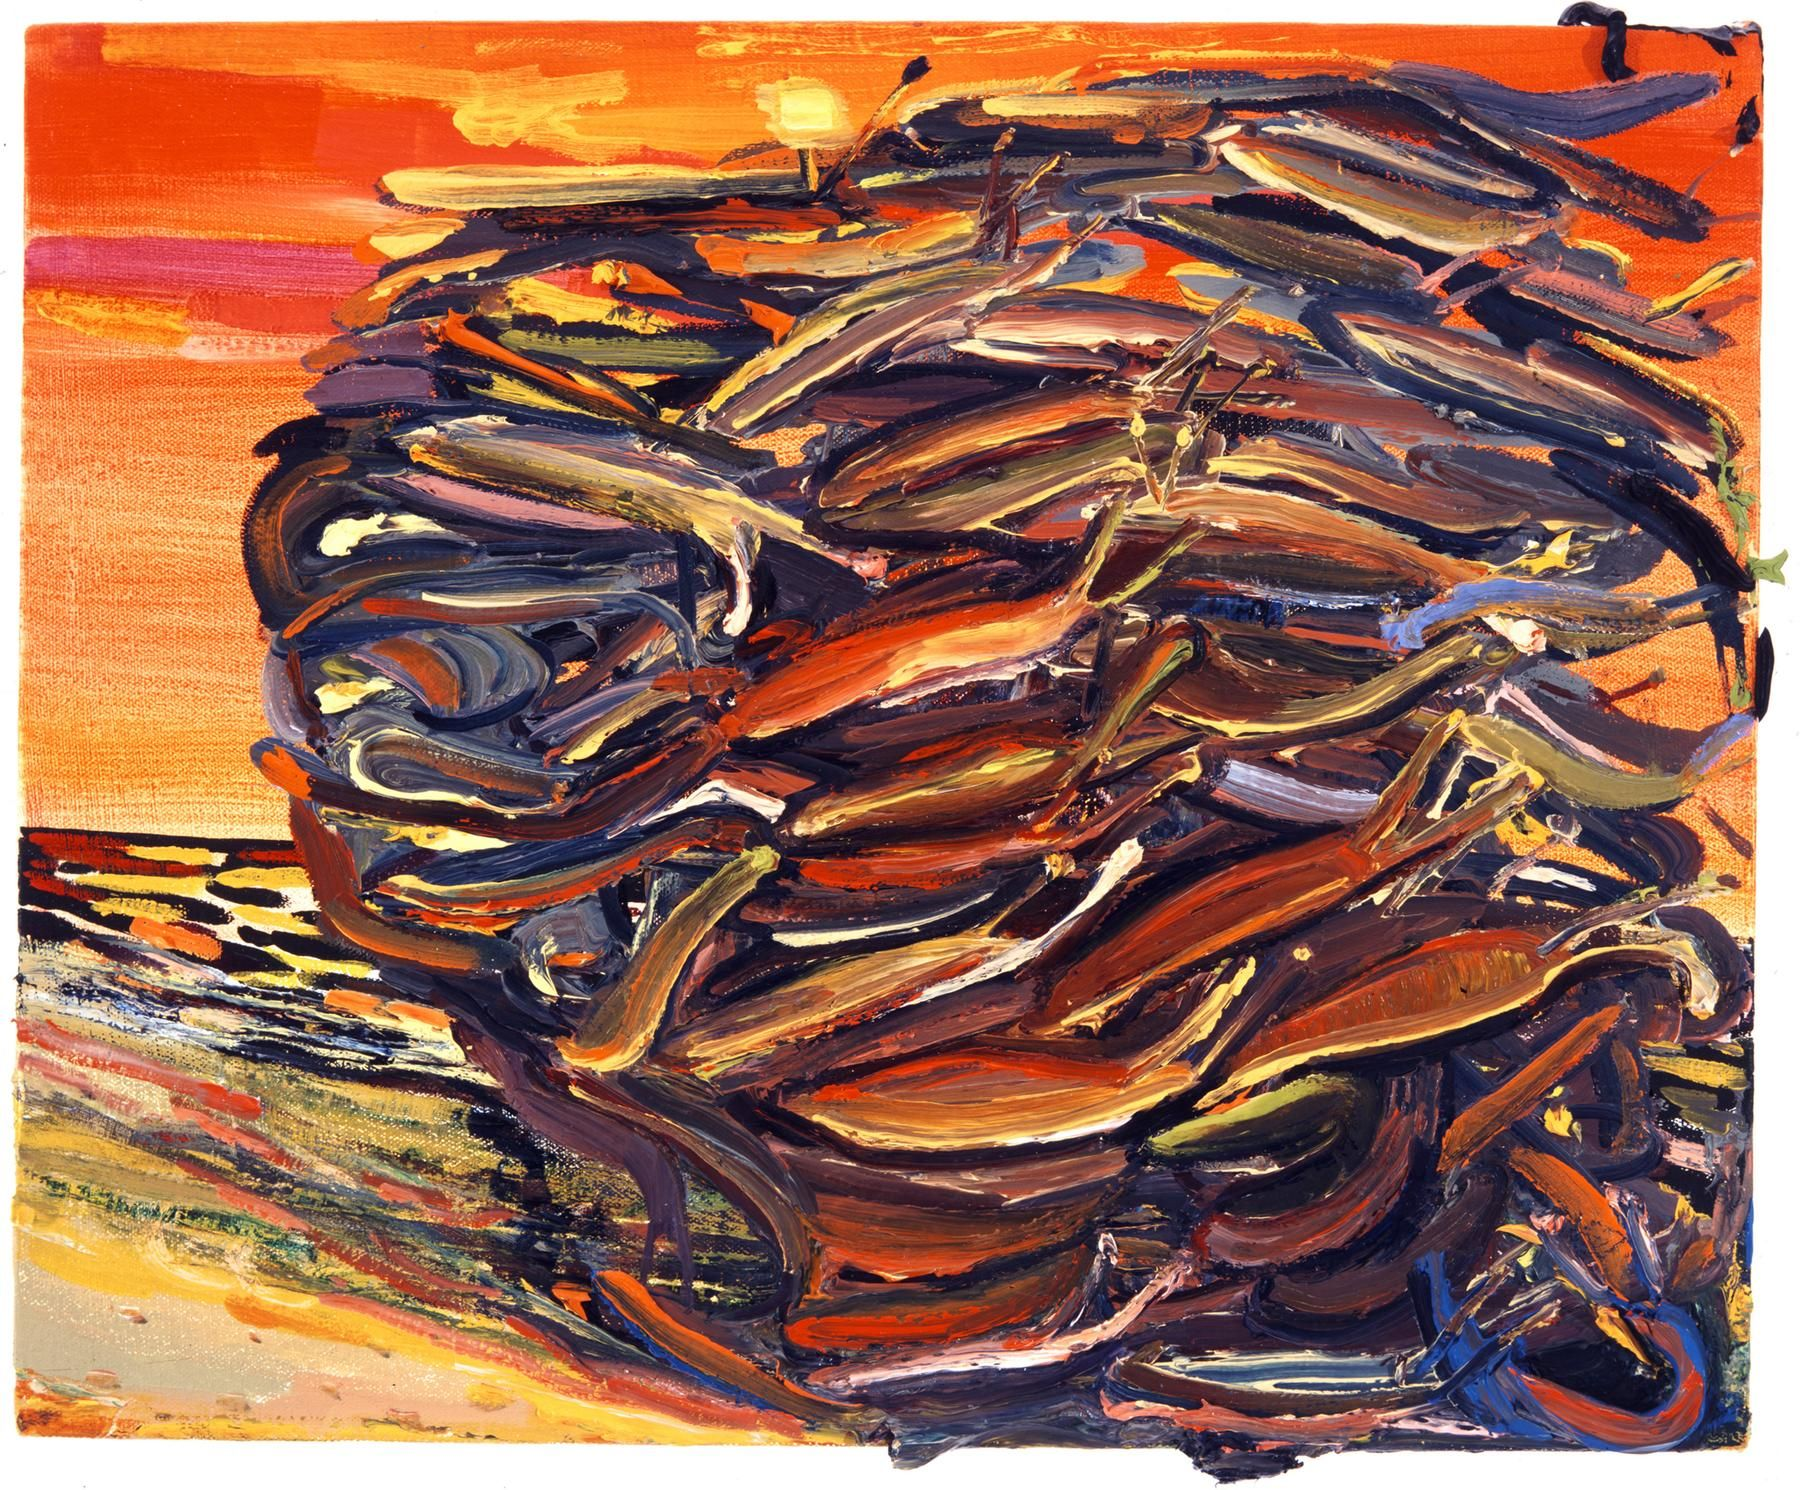 Slugs 2002 Oil on canvas